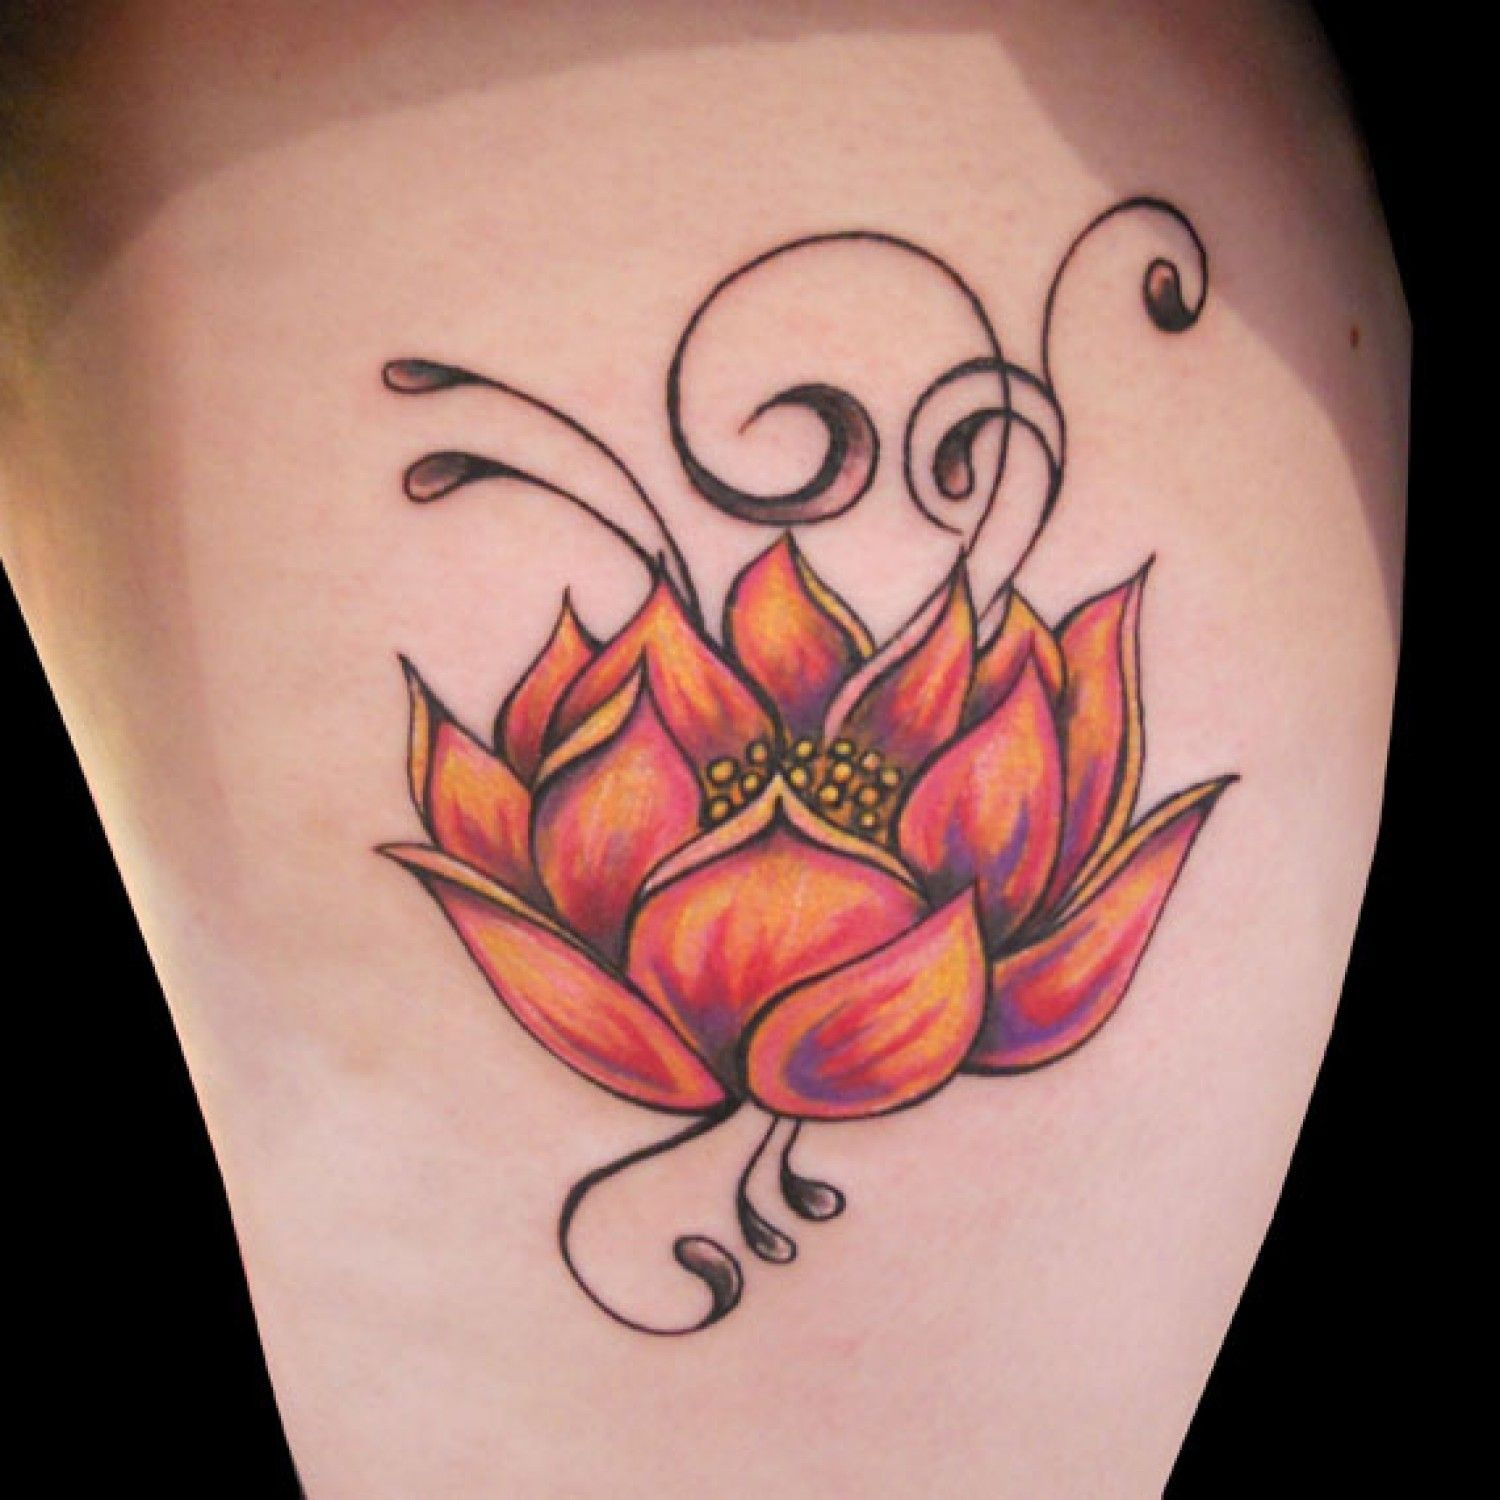 Lotus Flower Tattoo Designs Flower Meanings Pictures And Photos